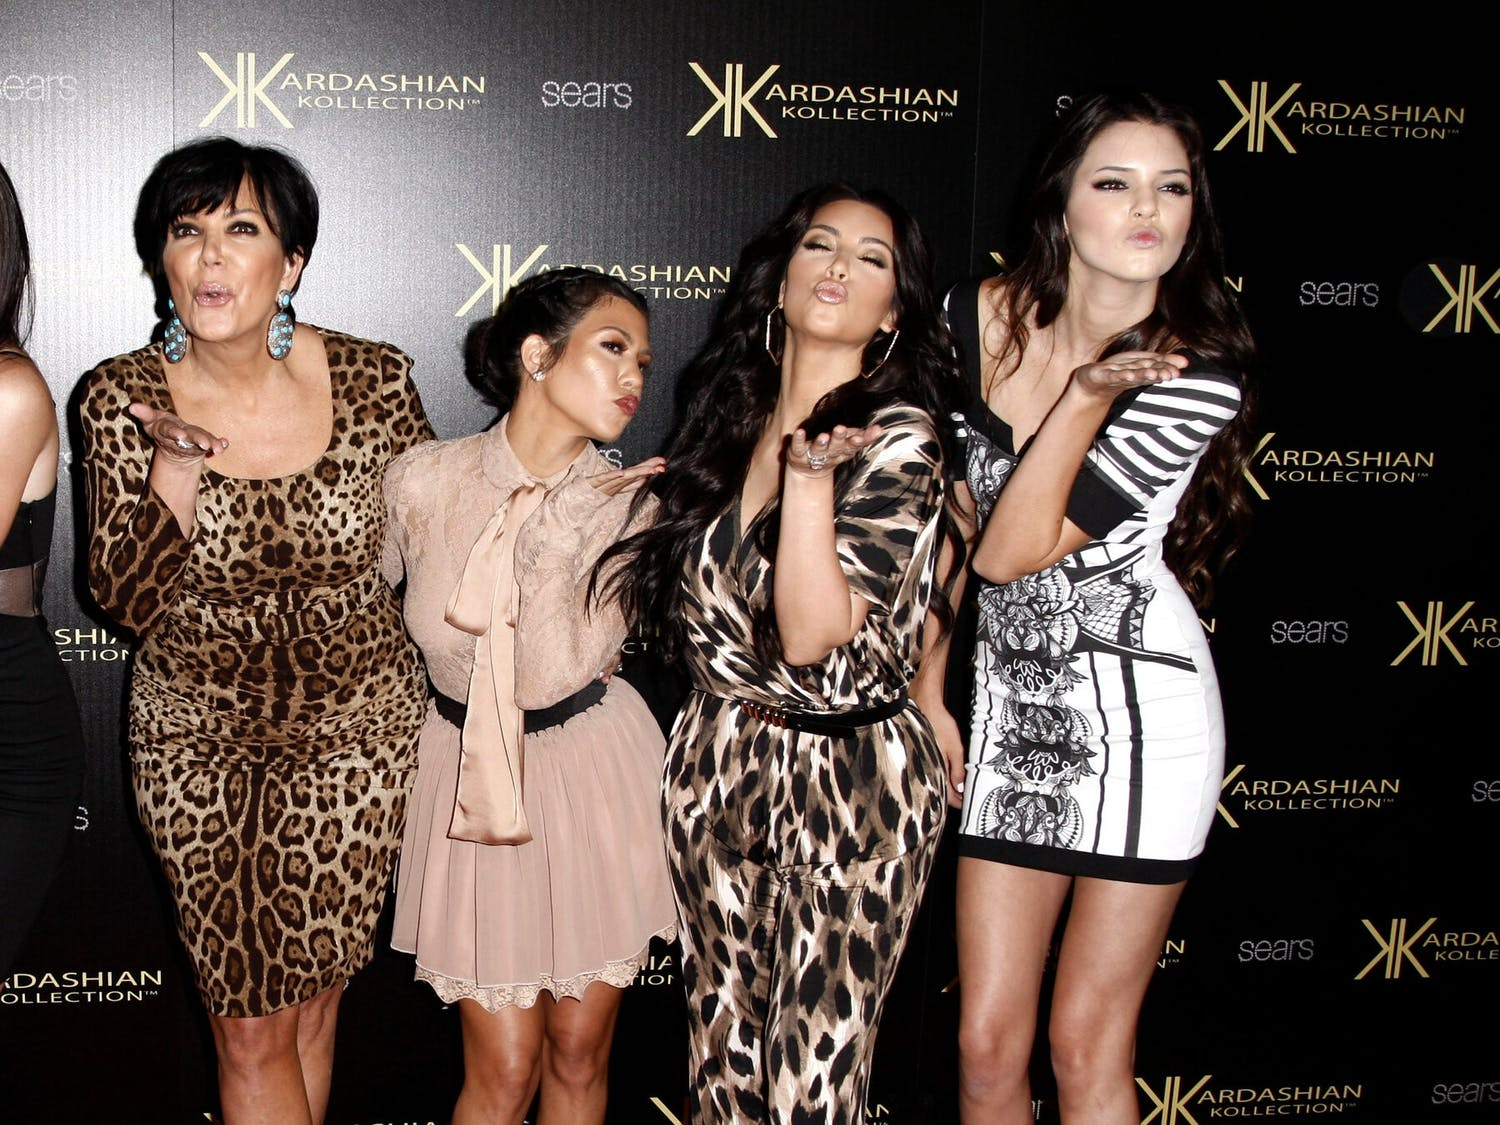 """The famously controversial Kardashian family has long been known for their reality show """"Keeping Up With the Kardashians,"""" which is finally coming to an end."""